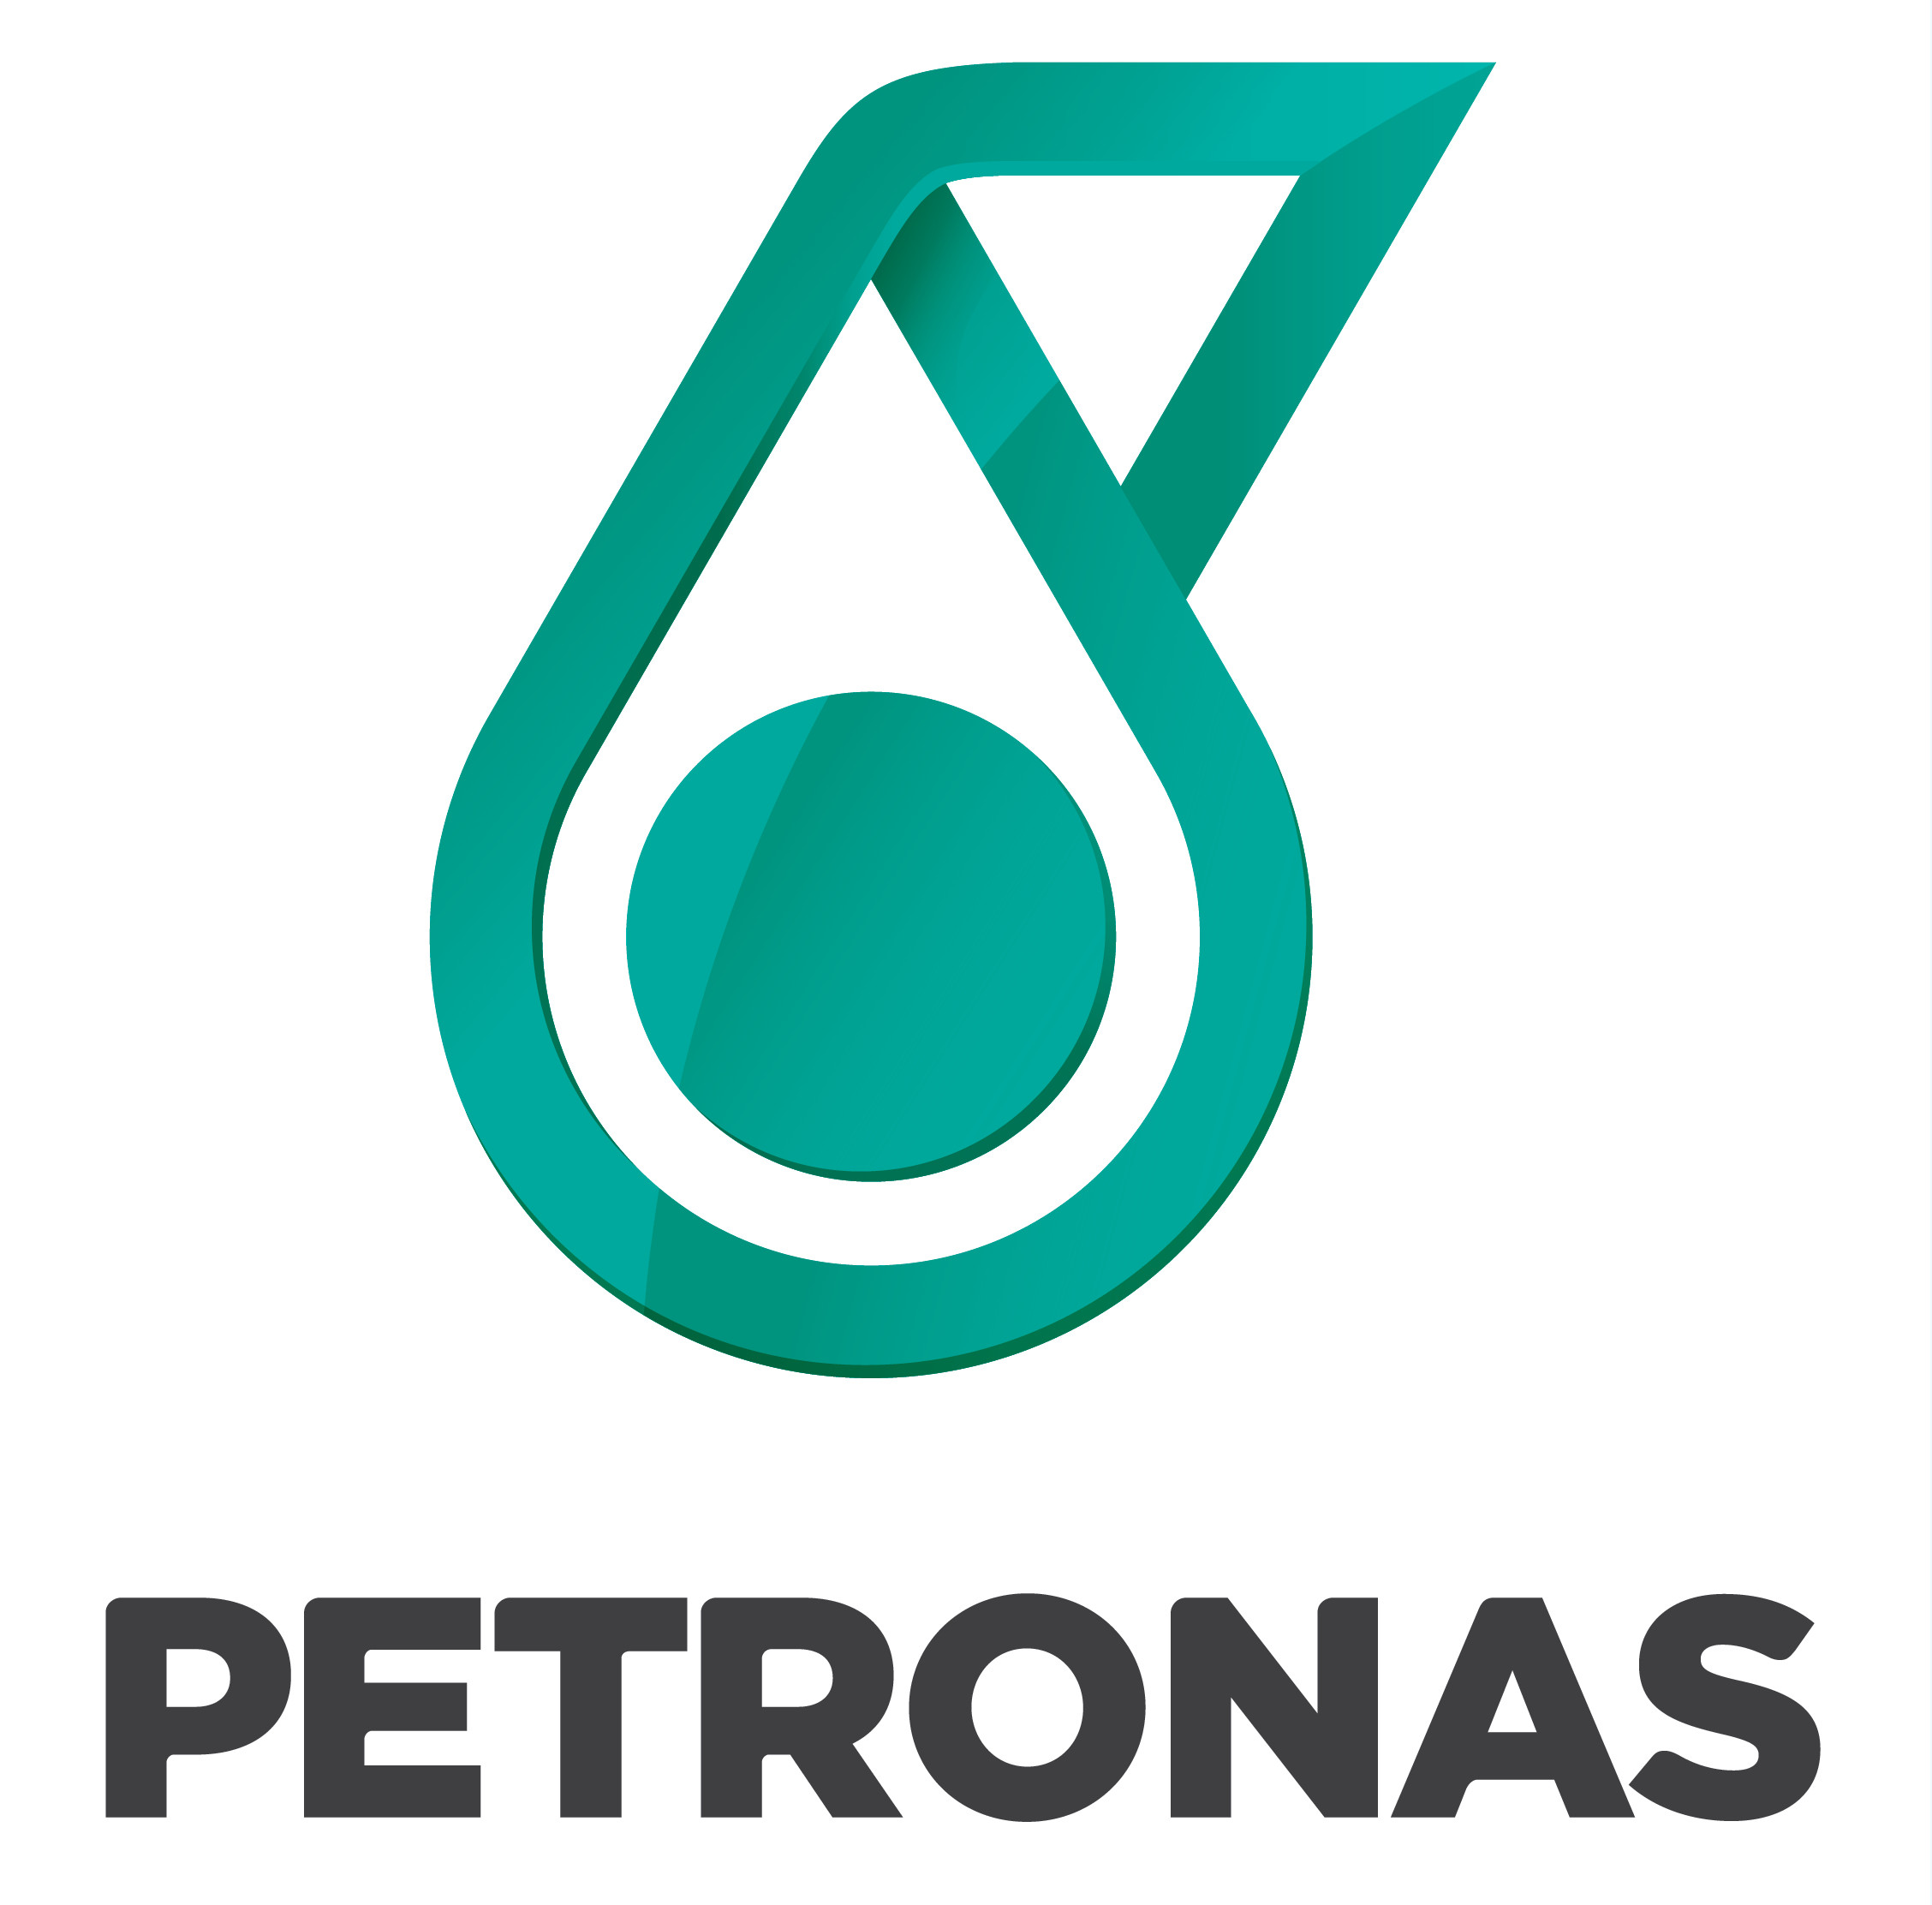 petronas-edit